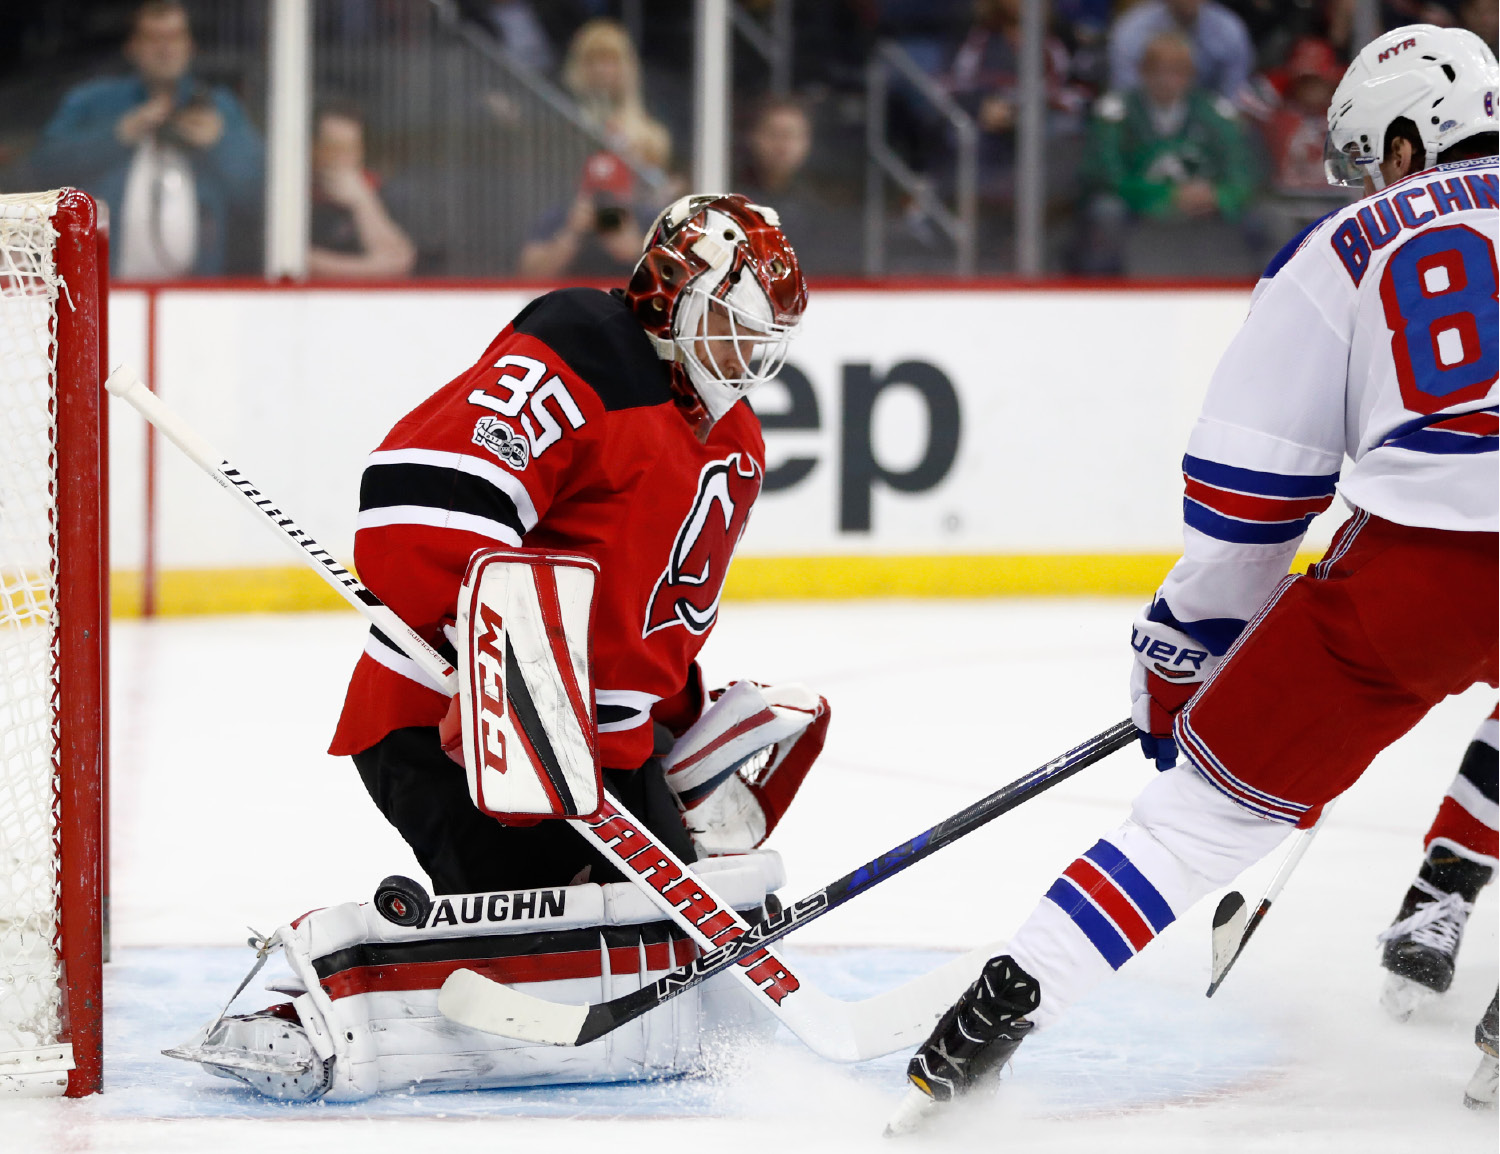 New Jersey Devils goalie Cory Schneider (35) blocks a shot by New York Rangers right wing Pavel Buchnevich (89), of Russia, during the first period of an NHL hockey game, Tuesday, March 21, 2017, in Newark, N.J. (AP Photo/Julio Cortez)